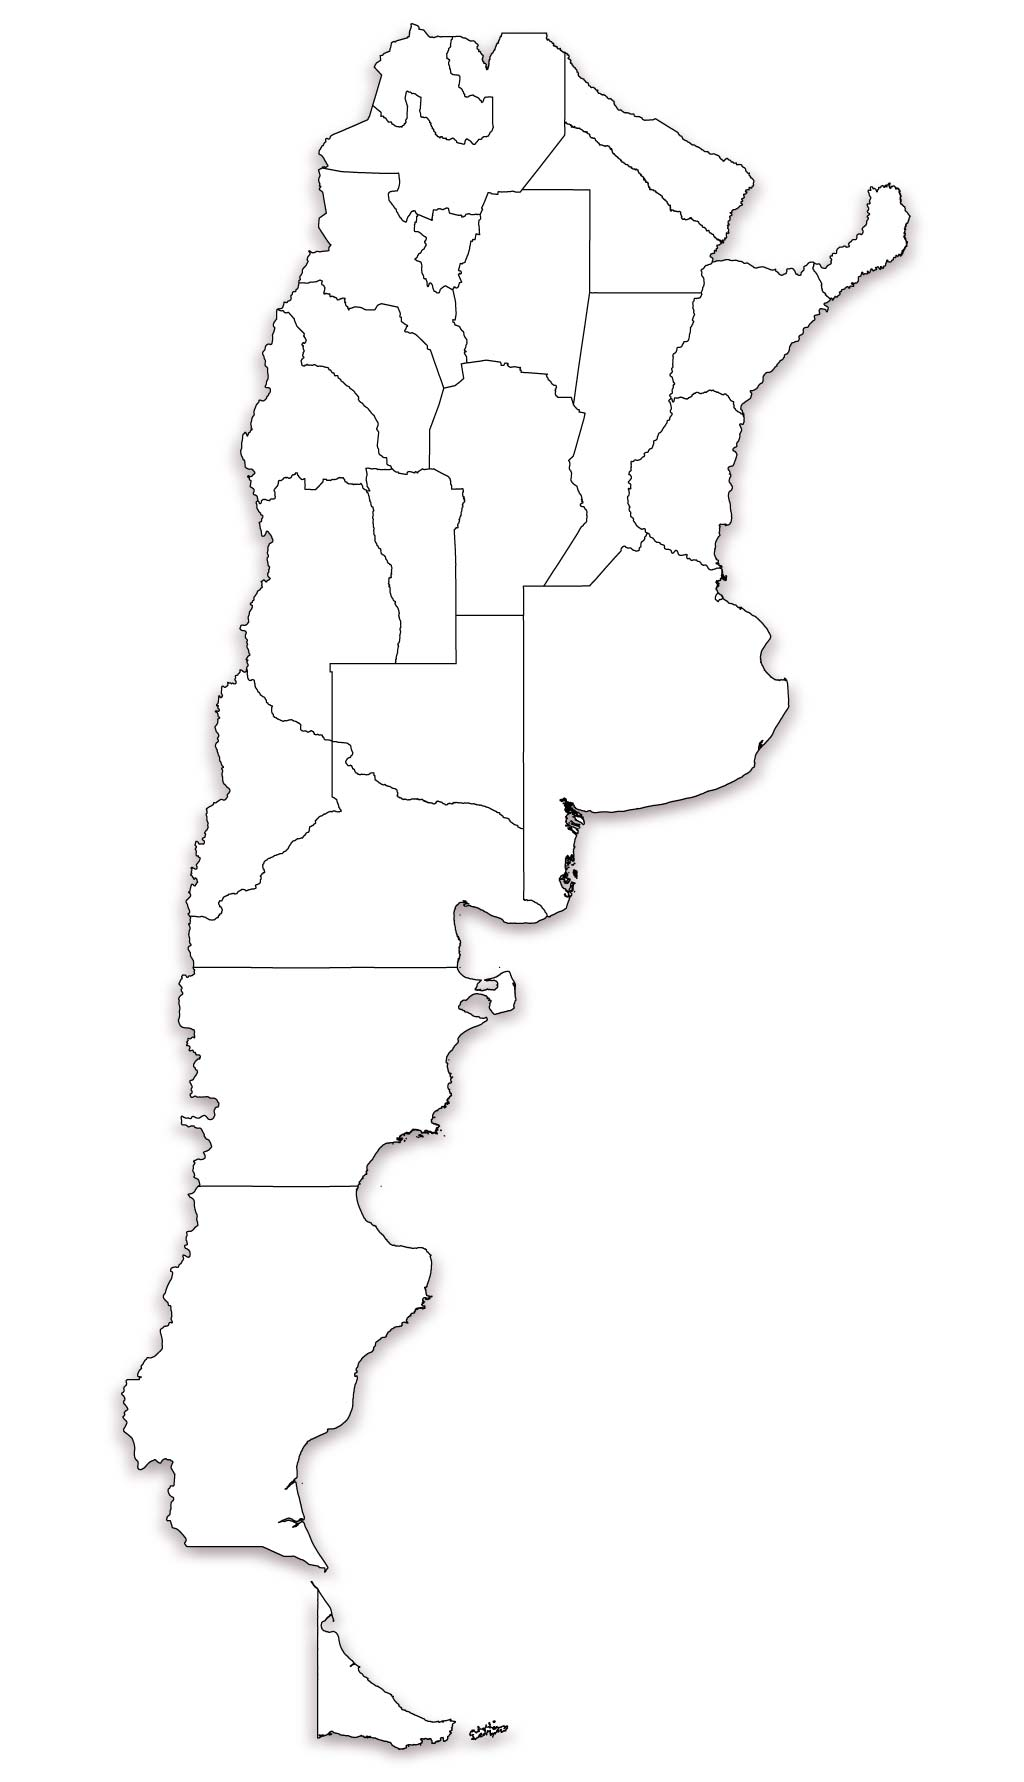 Blank Map Of Argentina Outline Map Of Argentina - Argentina map download